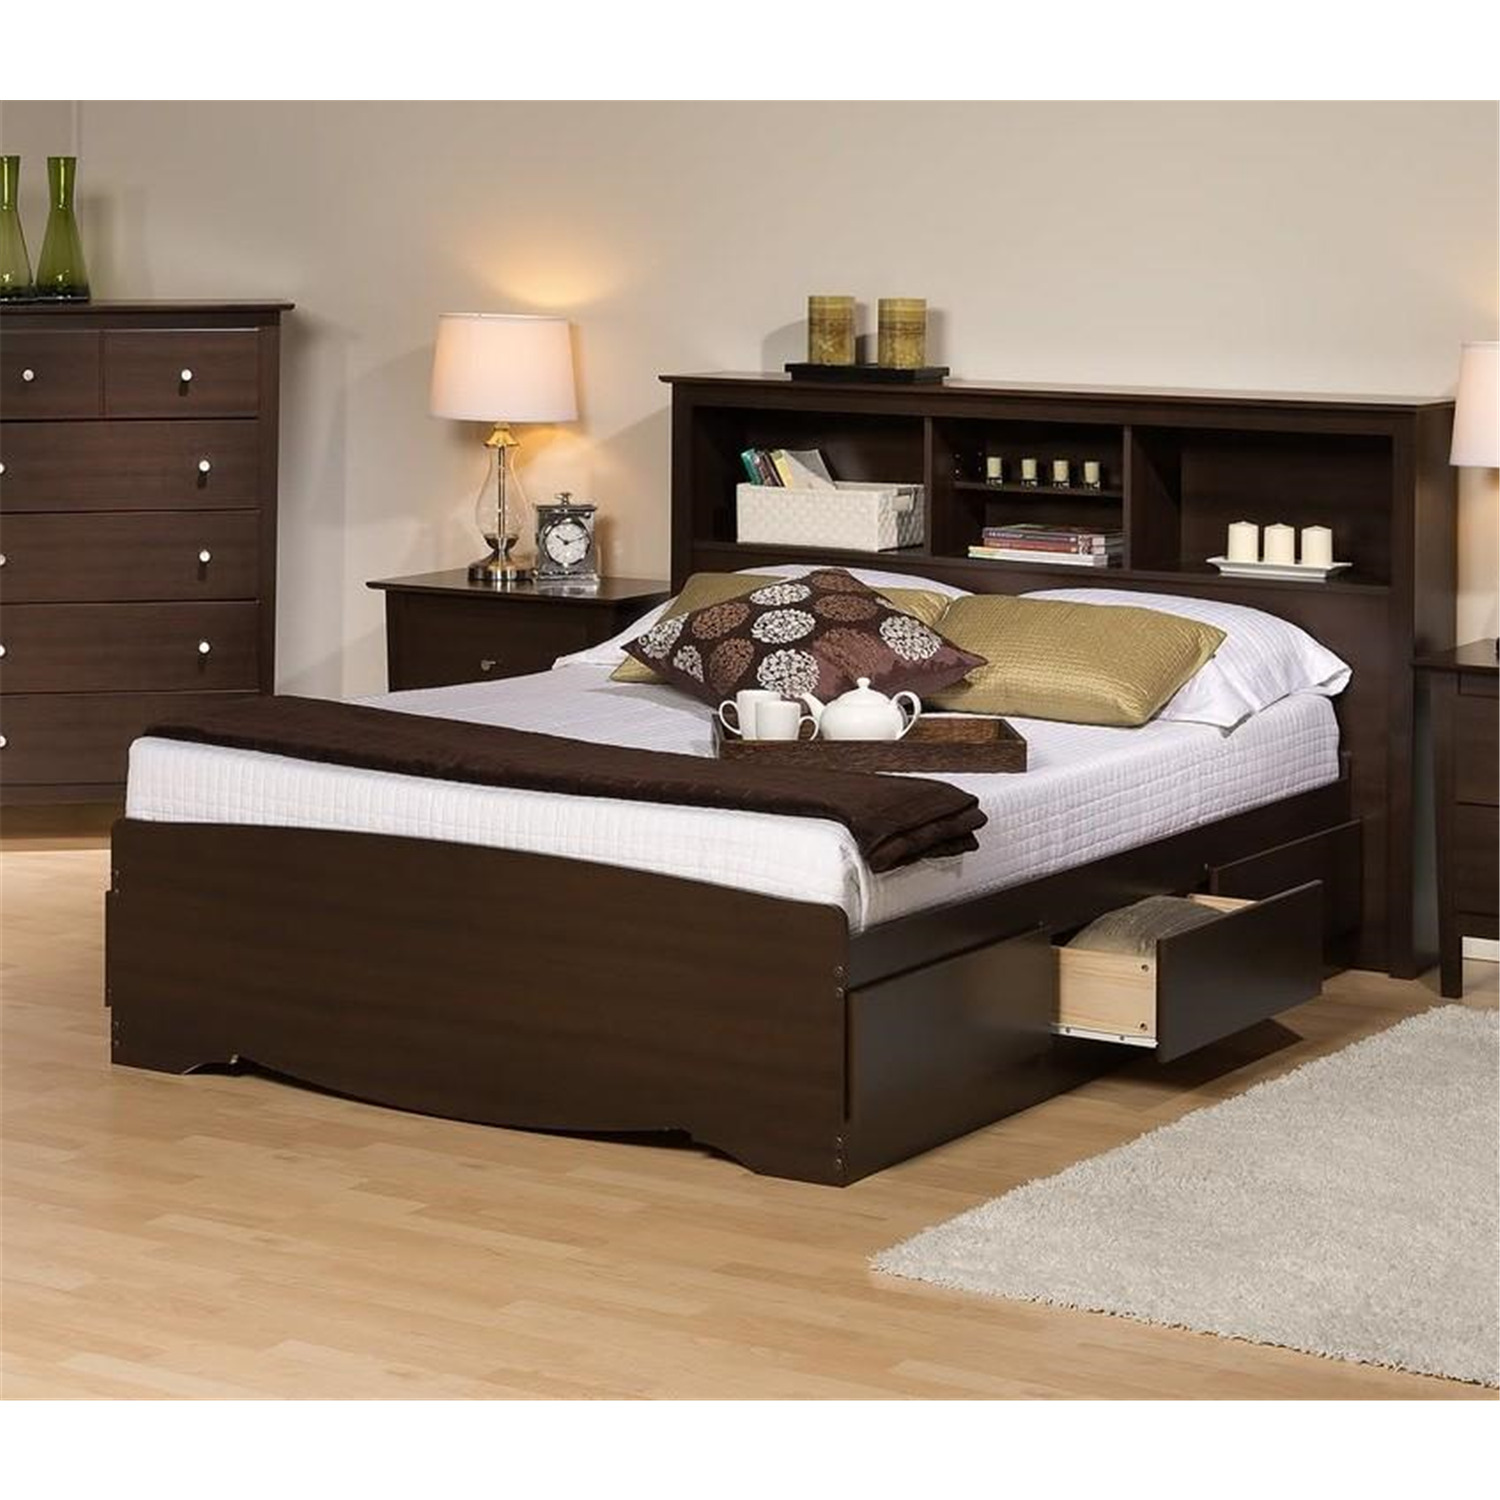 Platform storage bed w bookcase headboard ojcommerce for Bookshelf bed headboard